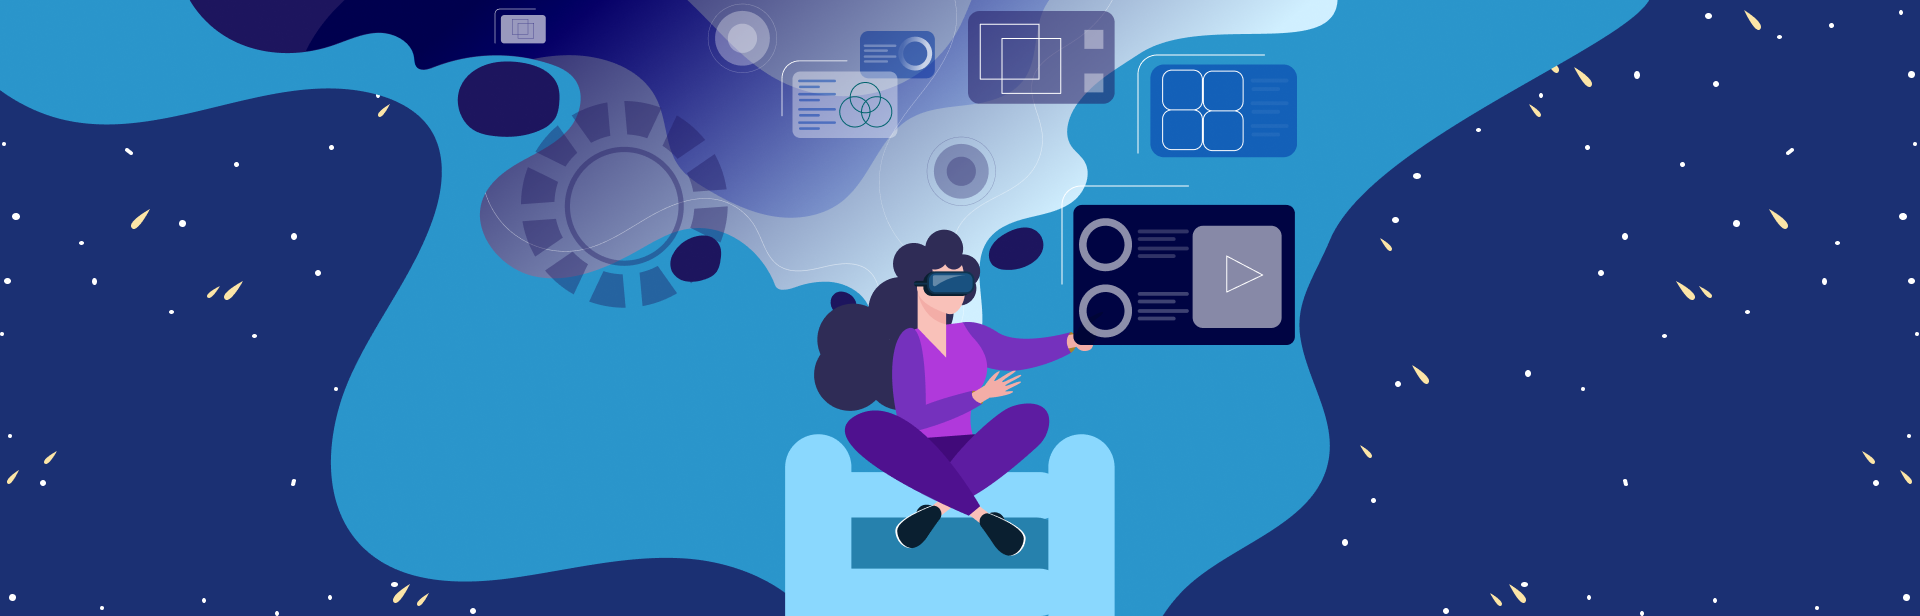 Distance Learning with VR